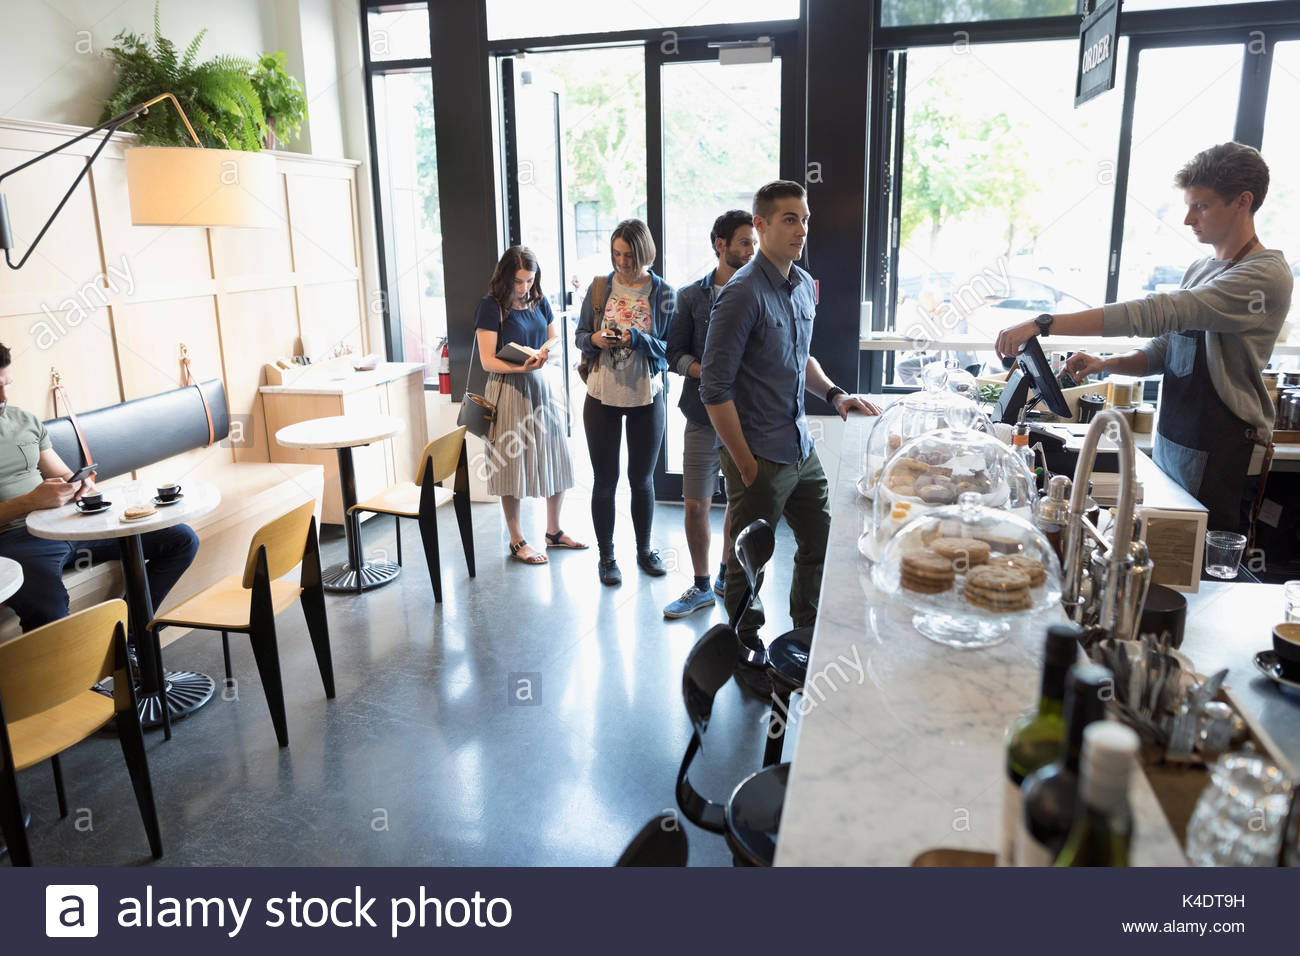 Male worker helping customers in queue at cafe counter - Stock Image